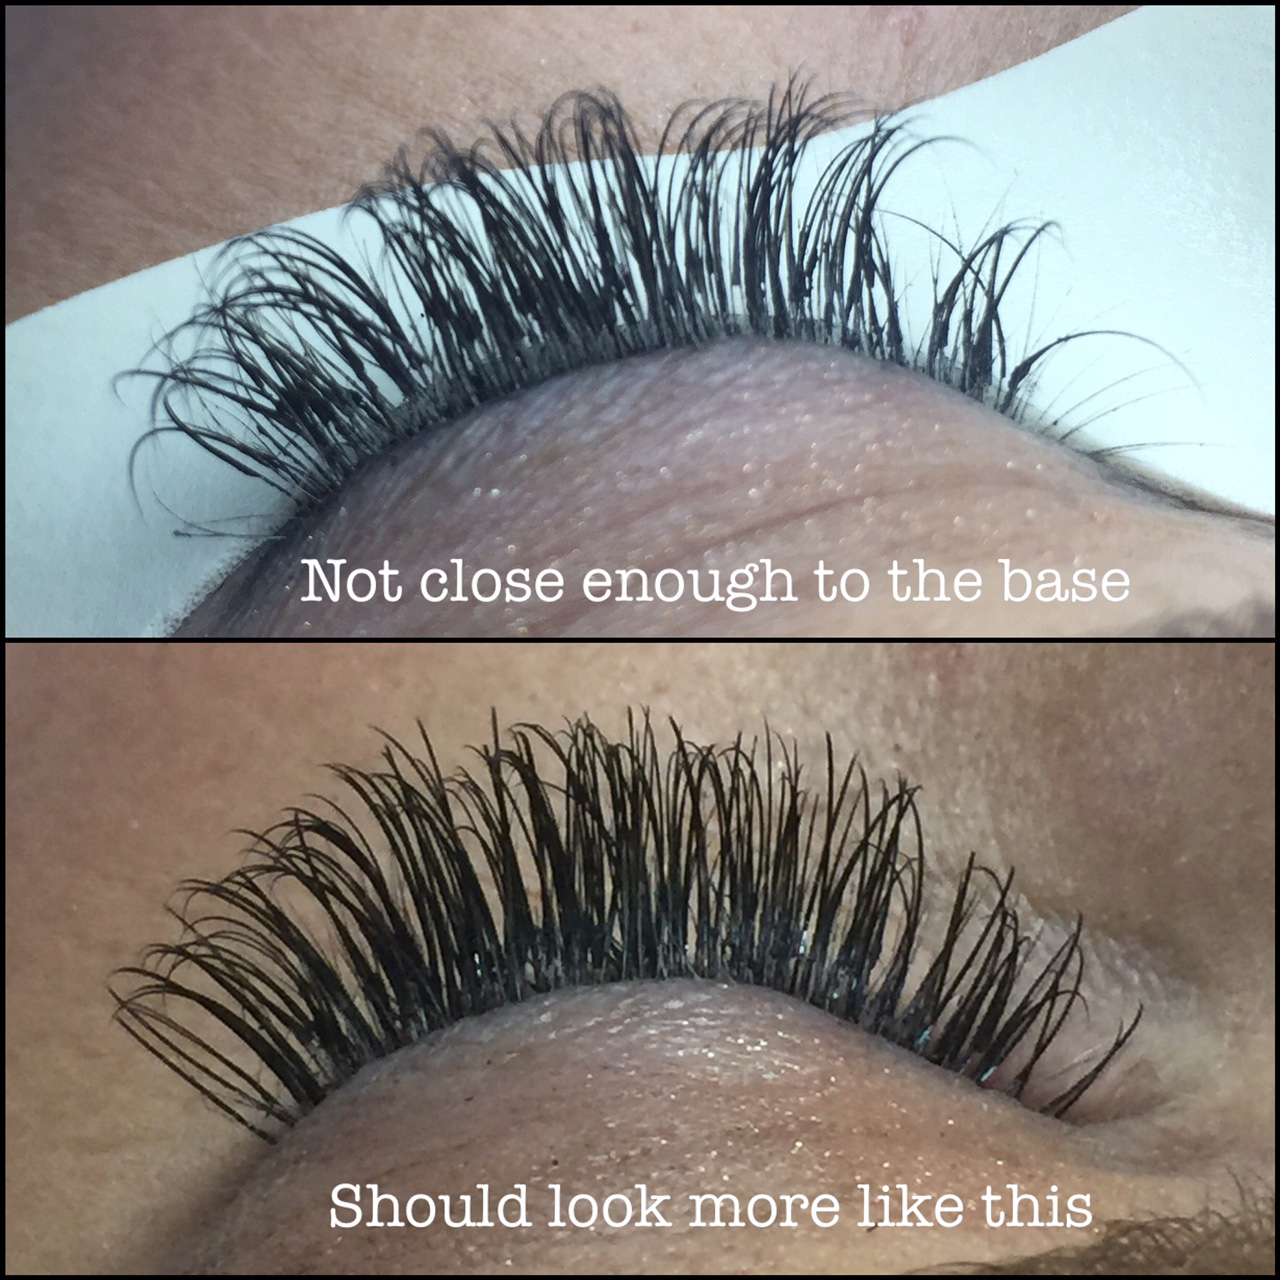 You can see the distance between the lash line (where lashes meet the eyelid) and where the base of the extension starts. This is what healthy growth will also look like. Lashes that become grown out like this need to be removed during fills.